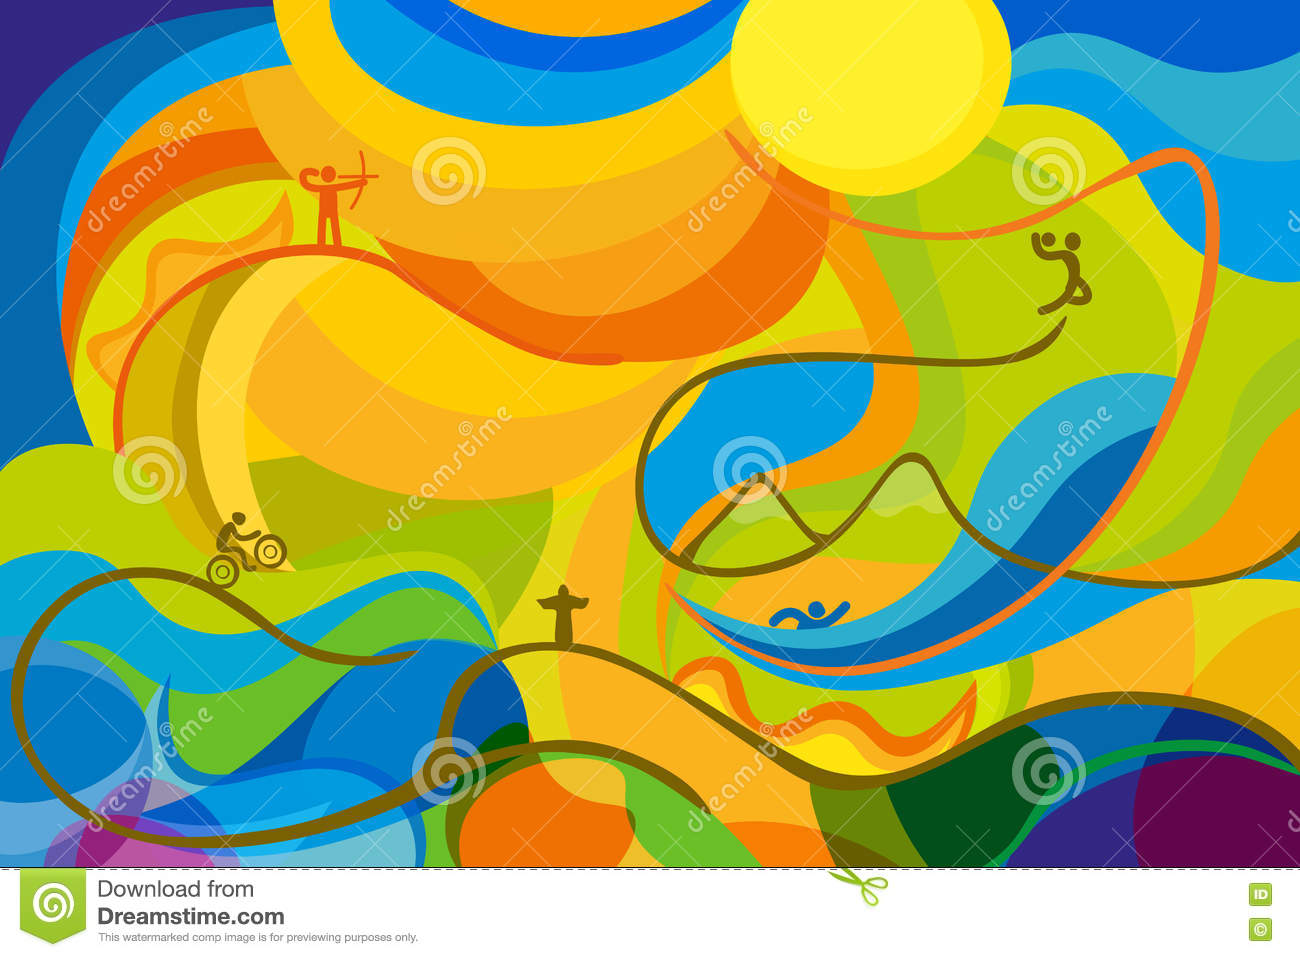 Summer Sports Wallpap: Rio 2016 Abstract Colorful Background Stock Vector